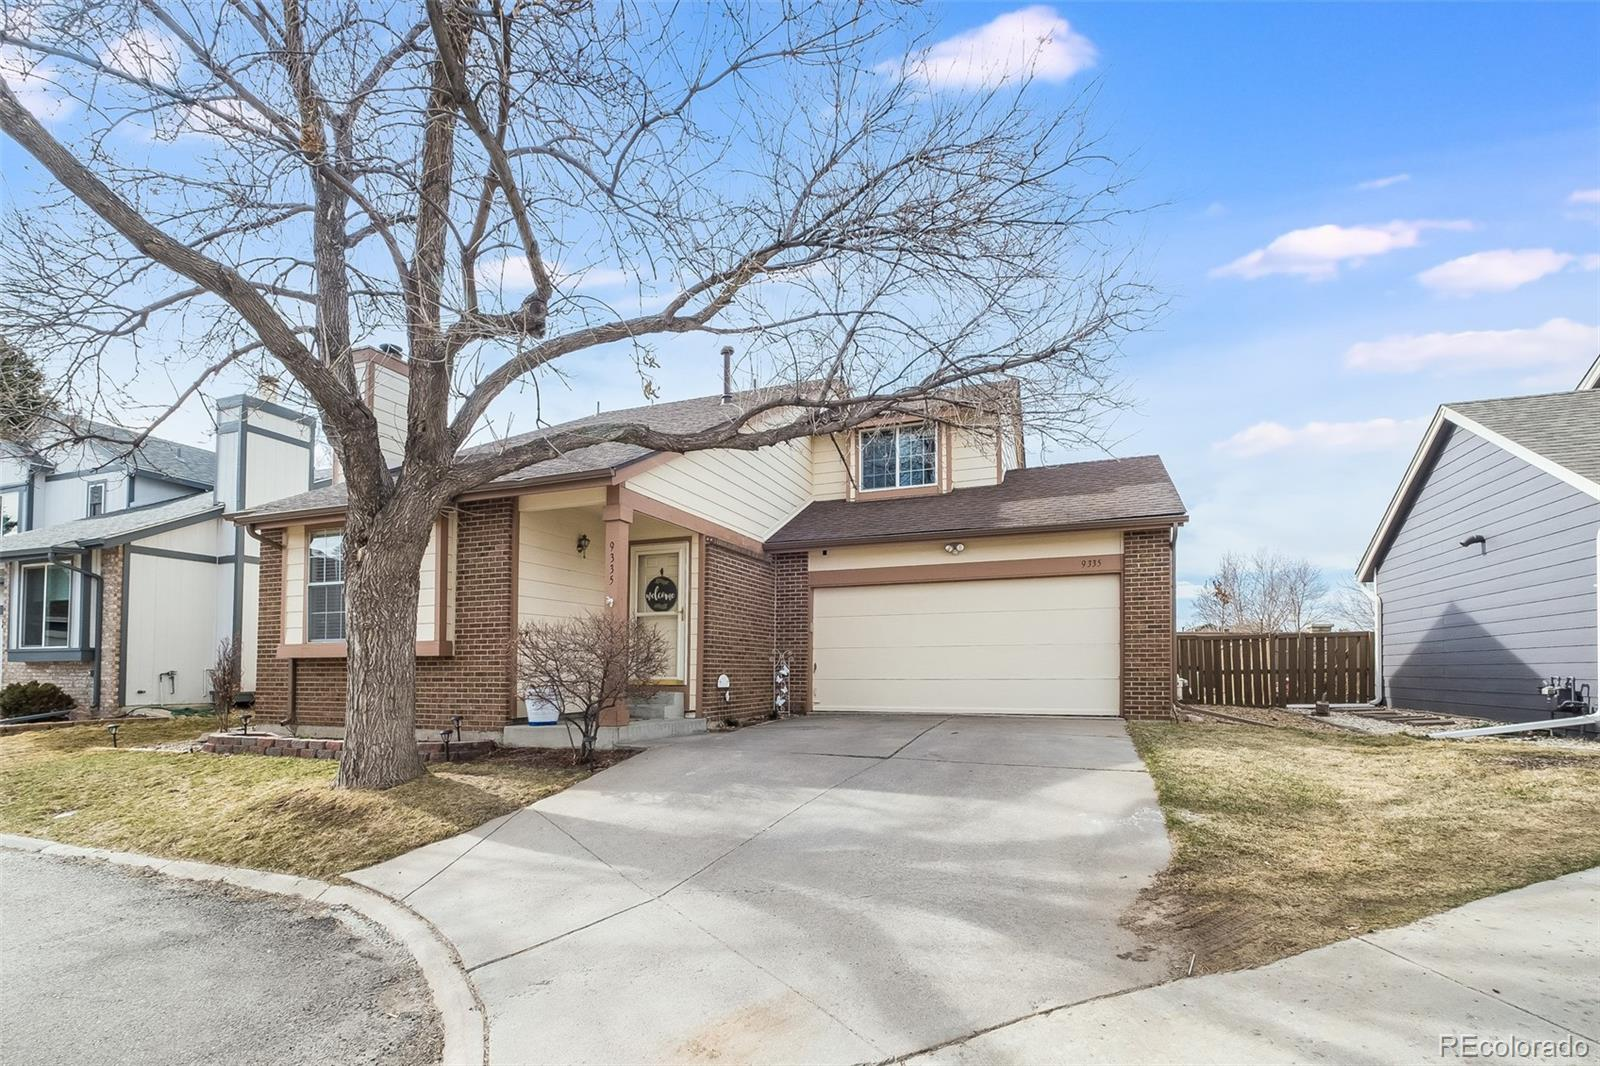 Rare Highlands Ranch GEM found at the end of the cul-de-sac under $500K! Step into this tastefully updated home complete with newer flooring and a wood burning fireplace. BRAND NEW GRANITE and BACKSPLASH make the open kitchen a great spot for entertaining. Couple that with the large back patio and fully fenced yard and you're well on your way to hosting those summer BBQ's. Upstairs has two finished bedrooms with the third loft space ready for your personal touch or conversion into a third conforming bedroom (already with closet)! This is one of the larger floorplans in the neighborhood. Come make the unfinished basement your own with plenty of room for a 4th bedroom, rec room or home office. Close to parks, trails and all the offerings of the Highlands Ranch HOA. Easy access to C470 and shopping. Come see this home before it's gone!